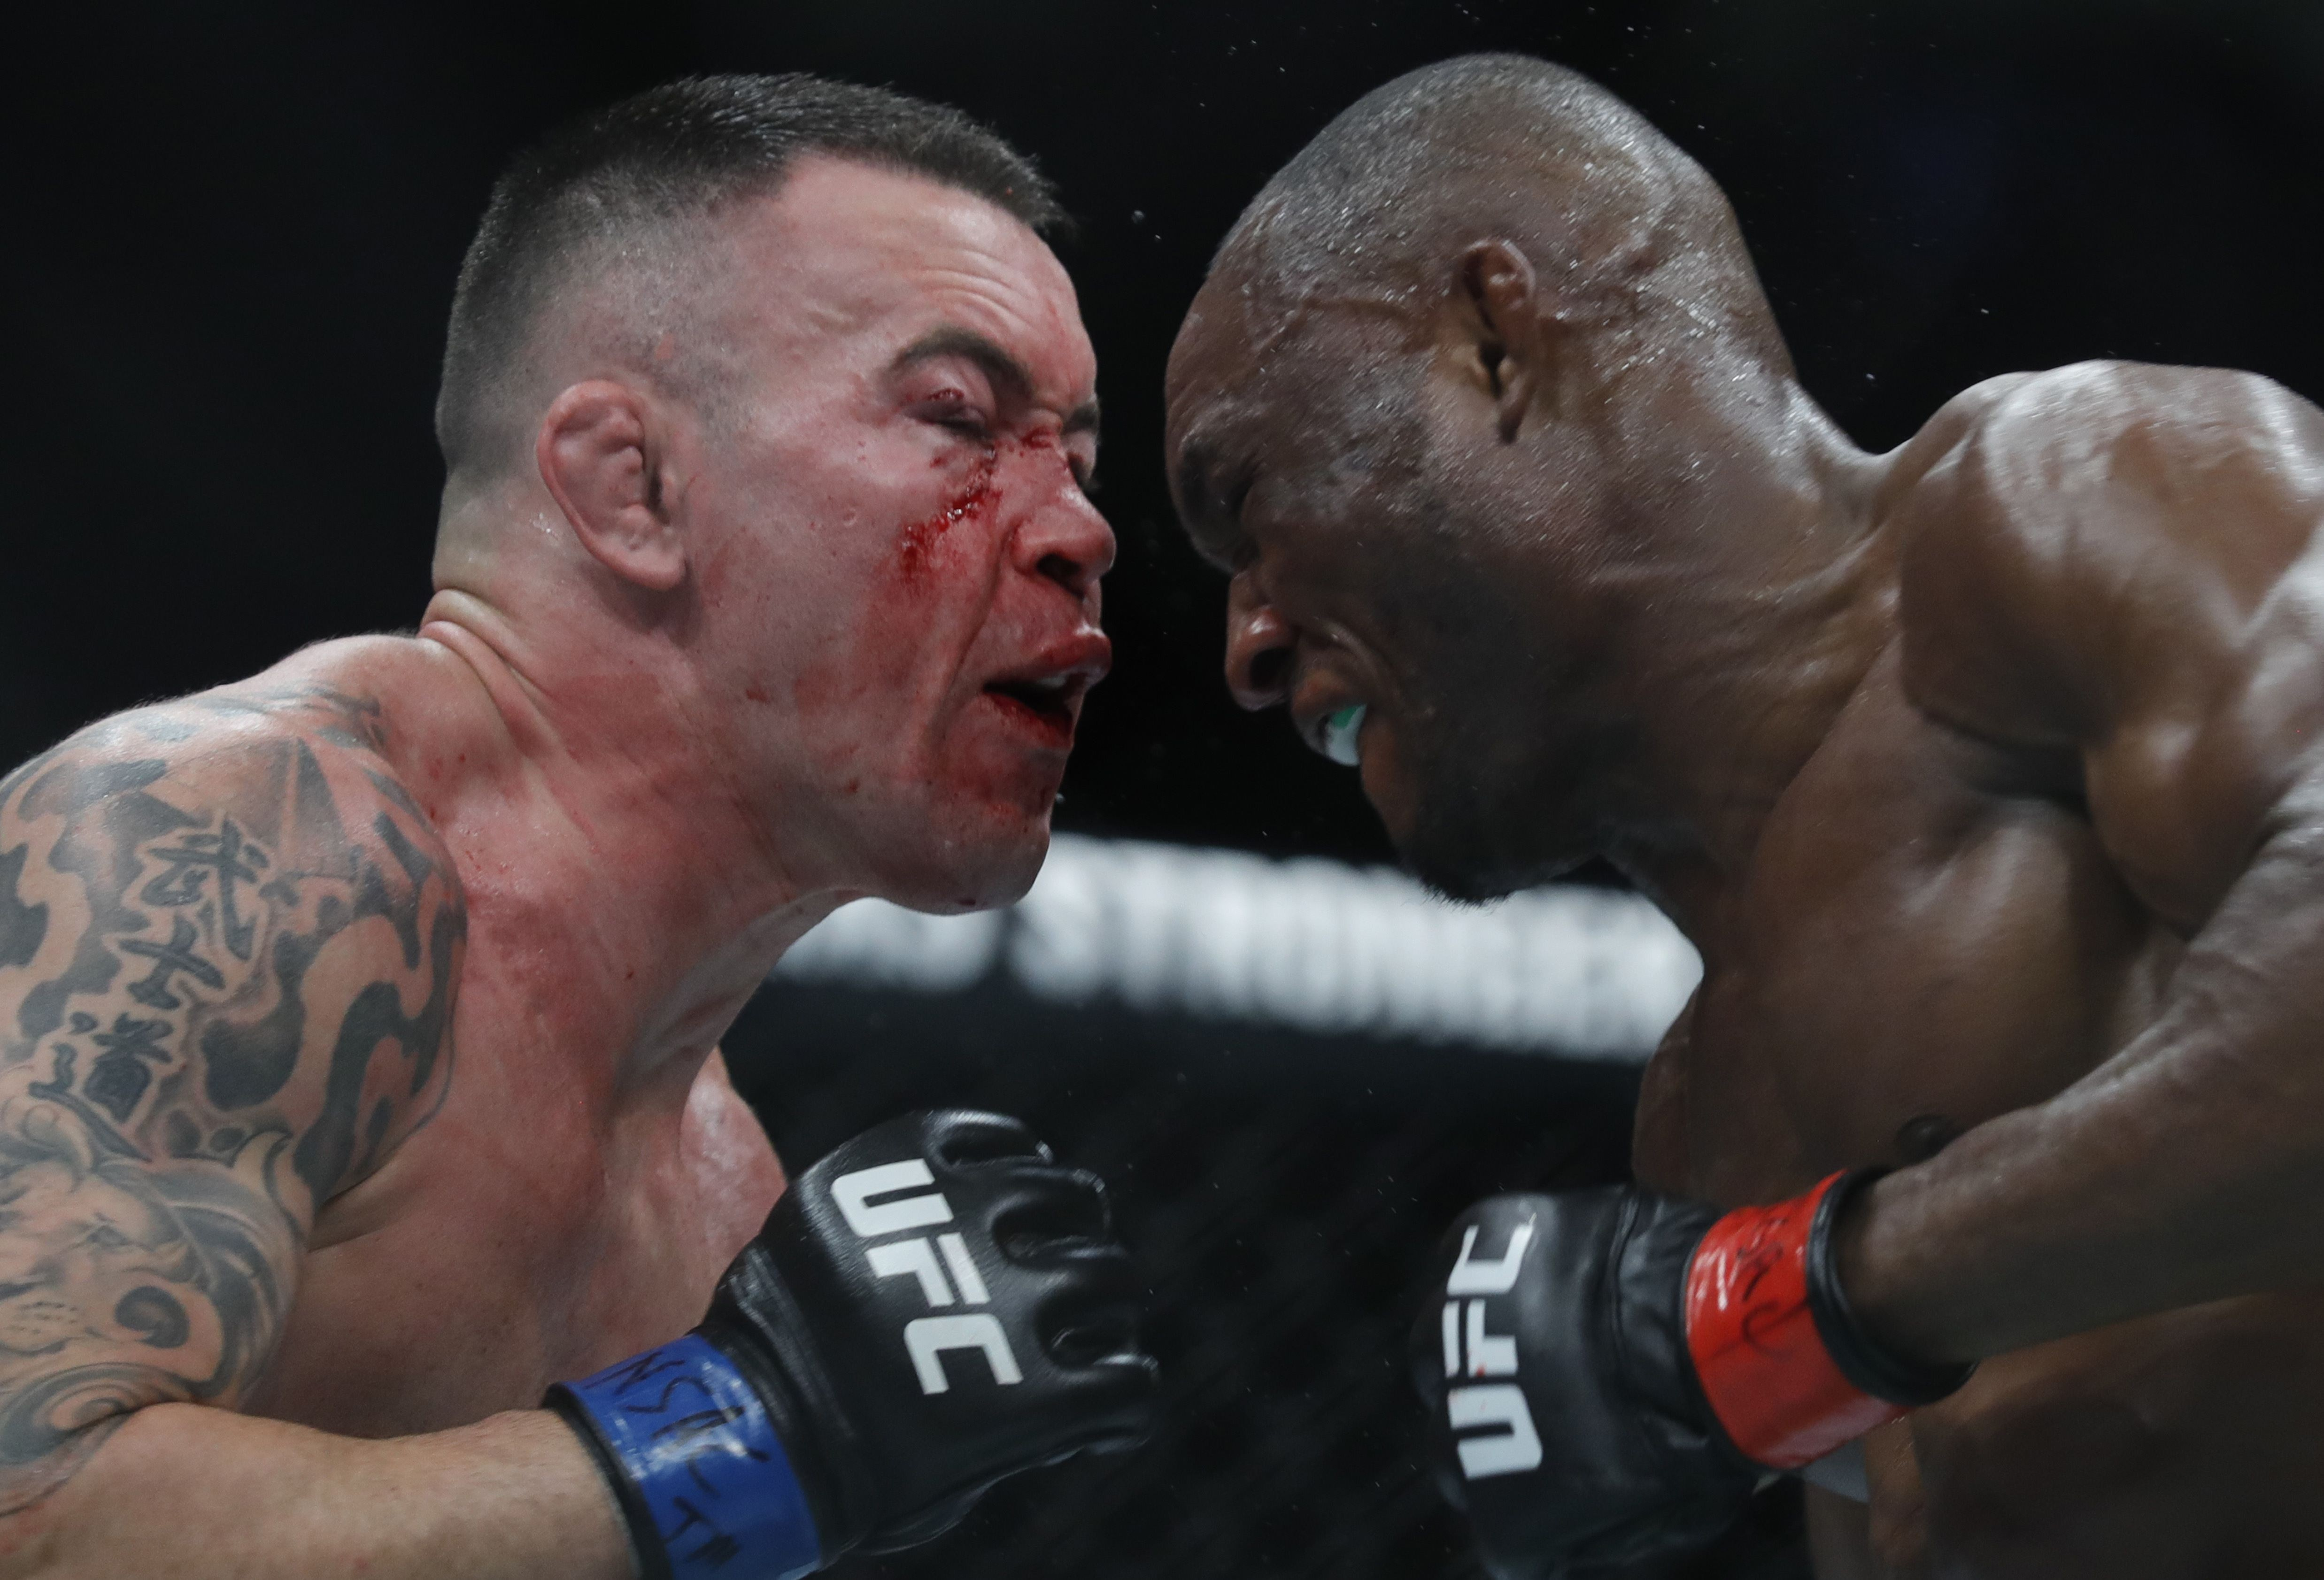 Ufc Tyron Woodley Disgusted By Colby Covington Vs Kamaru Usman Want To Throw Up South China Morning Post